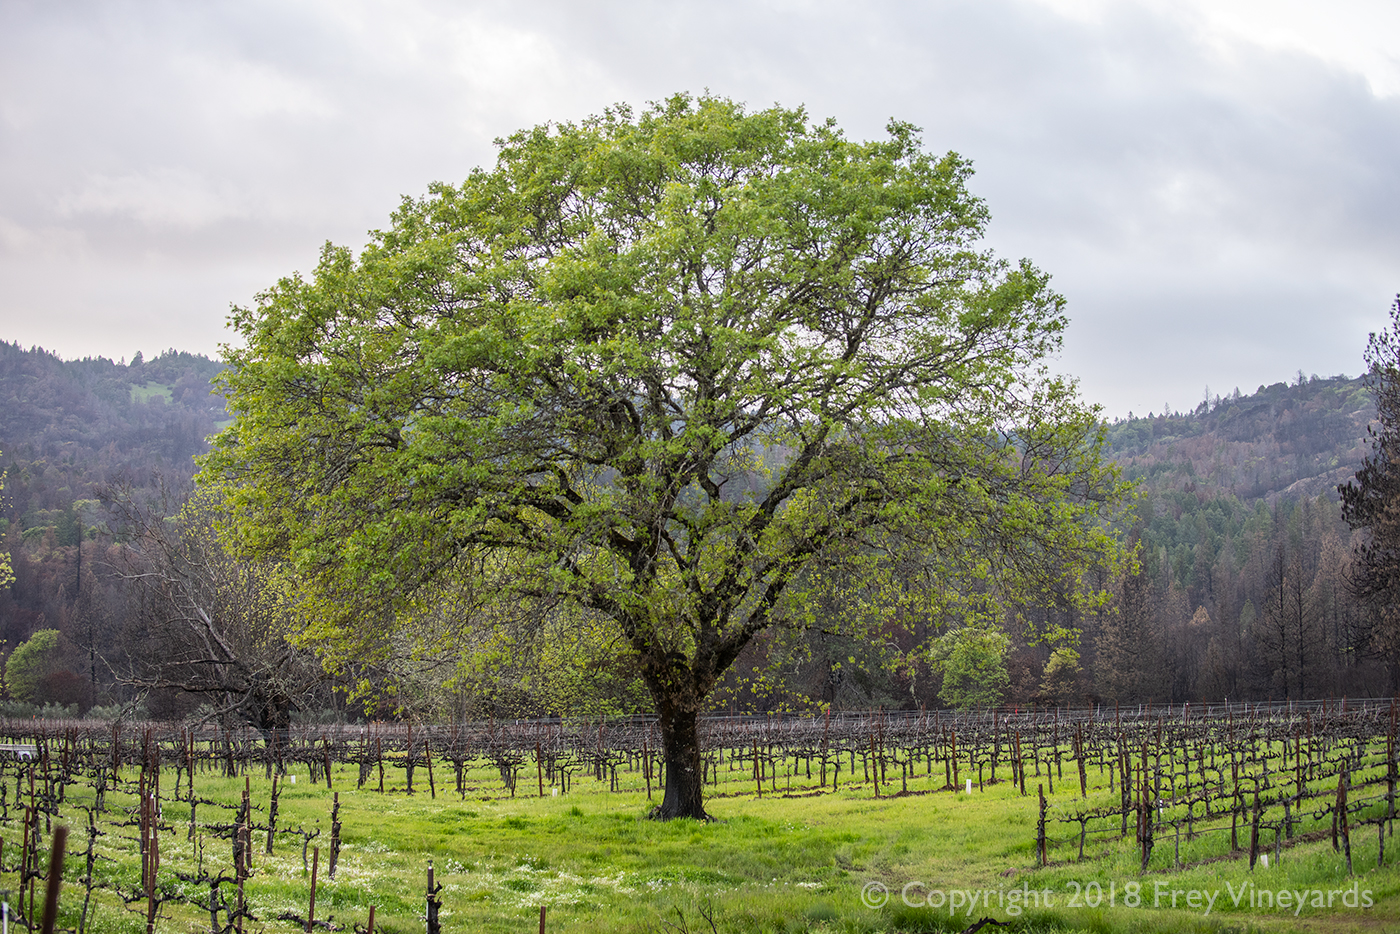 Tree in Frey organic vineyard